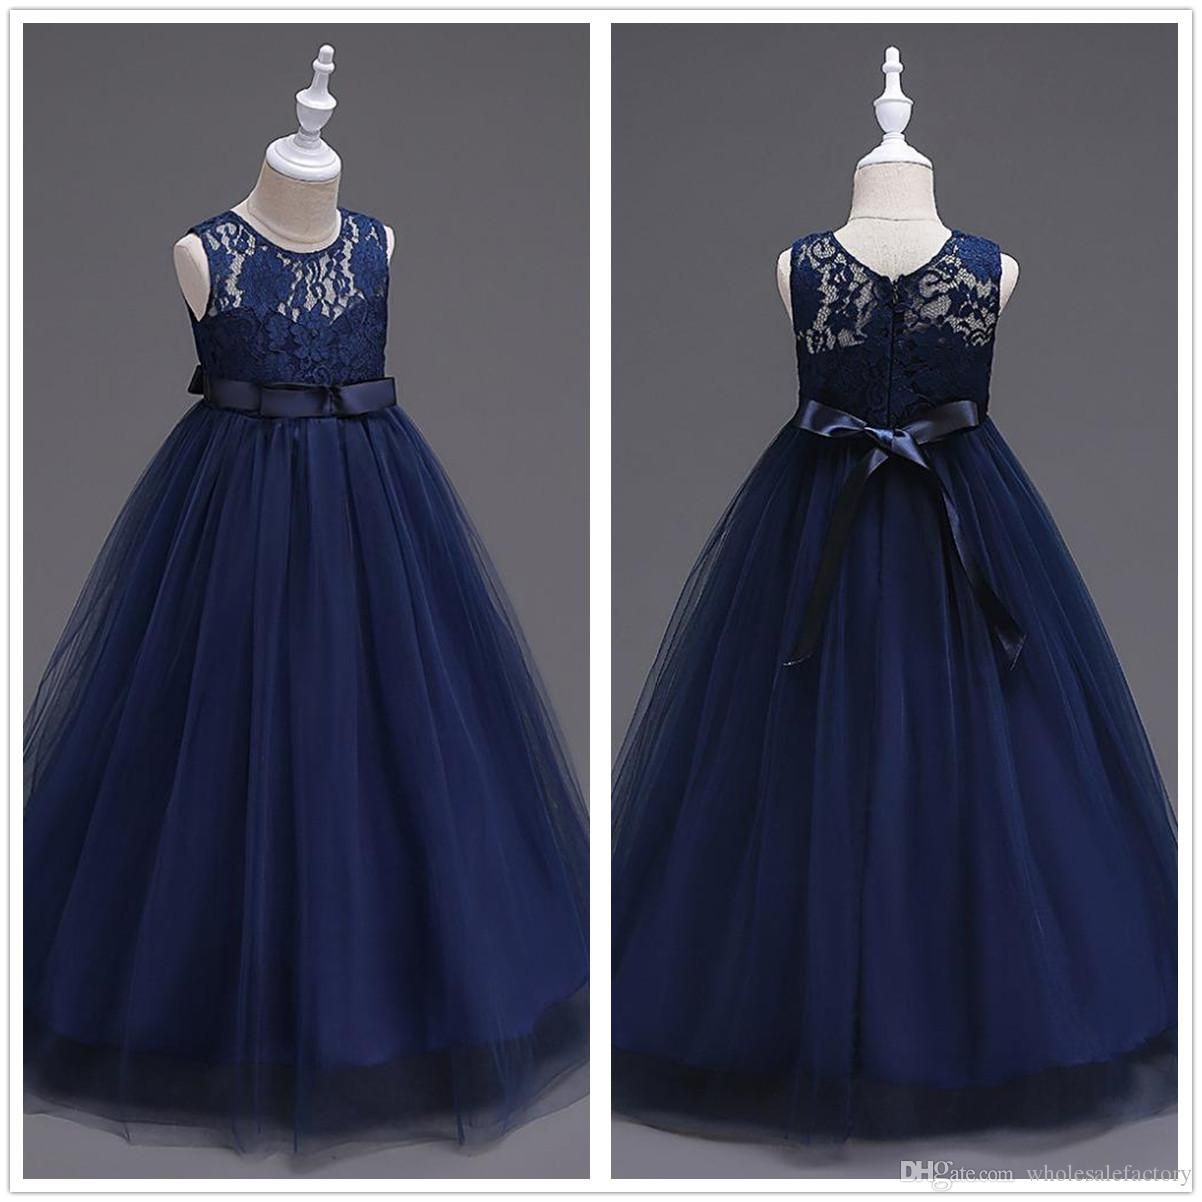 Cute Navy Blue Tulle A Line Sash Long Flower Girls' Dresses Crew Neck Sleeveless Lace Top Birthday Party Little Girl Dresses In Stock MC0889